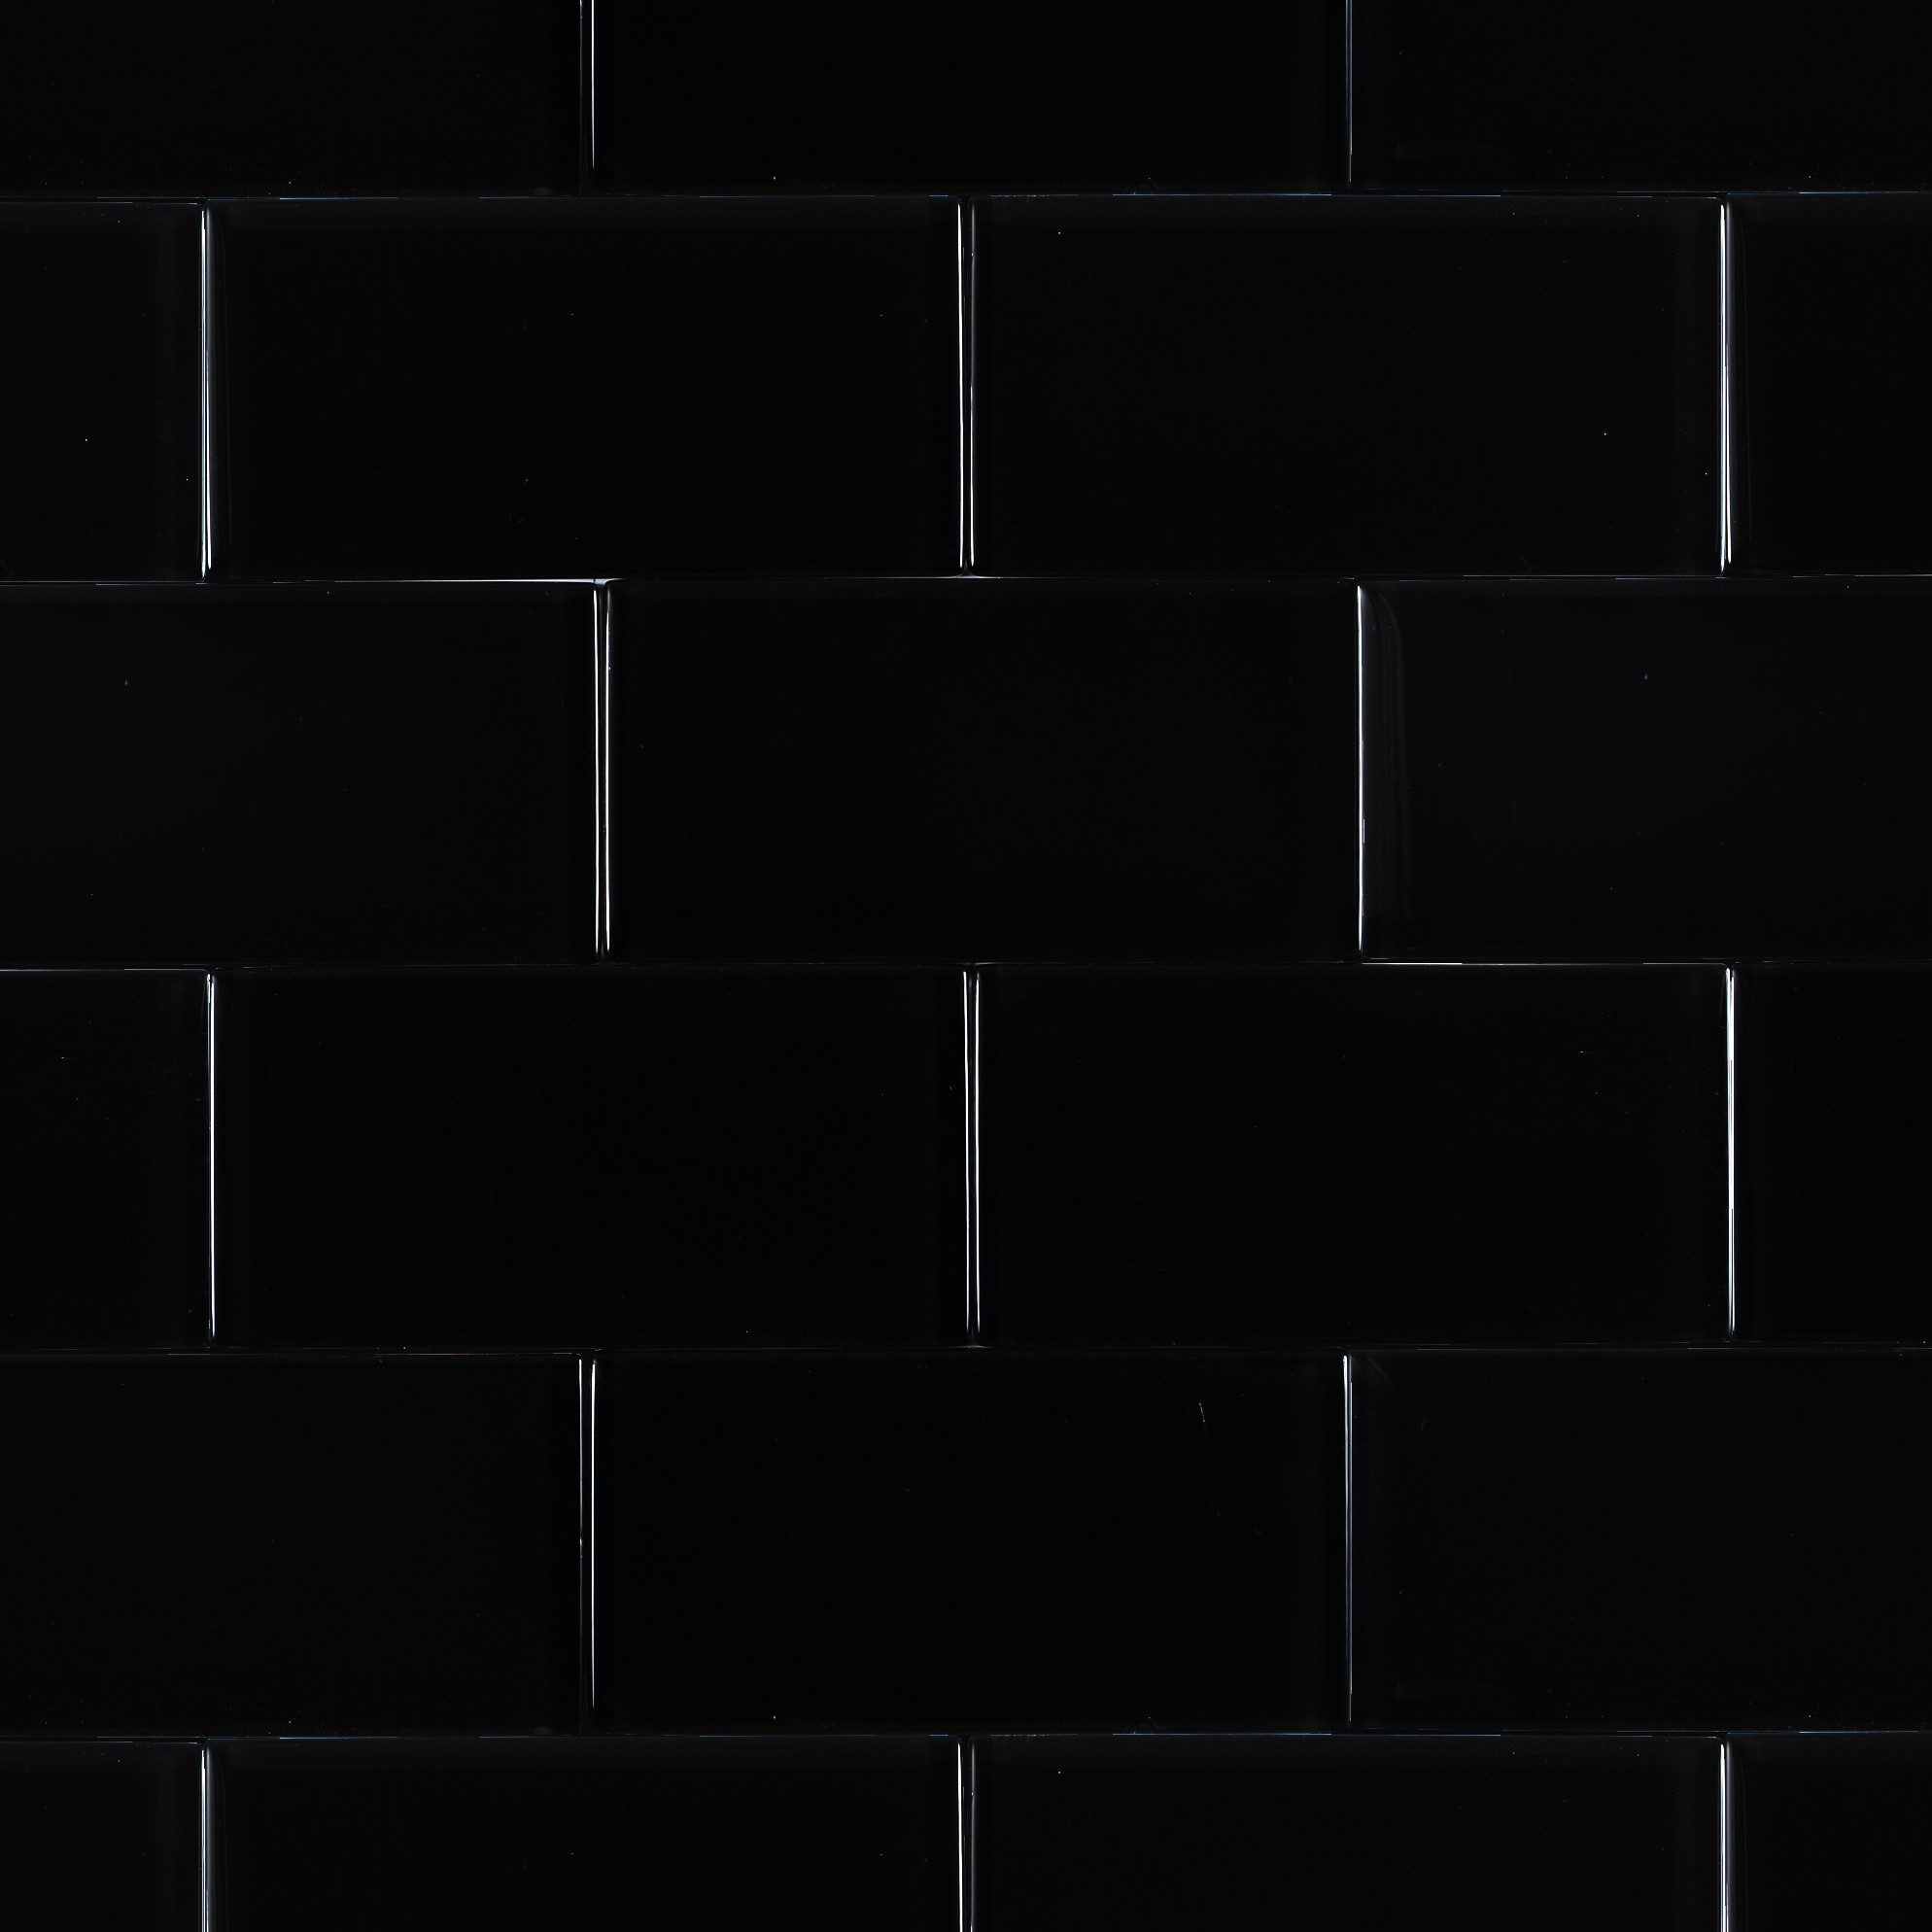 Black Subway Tile Photo Id P6668 Item Ba1045 Photo Id P6668 Item Ba1045 Photo Id P6667 Item